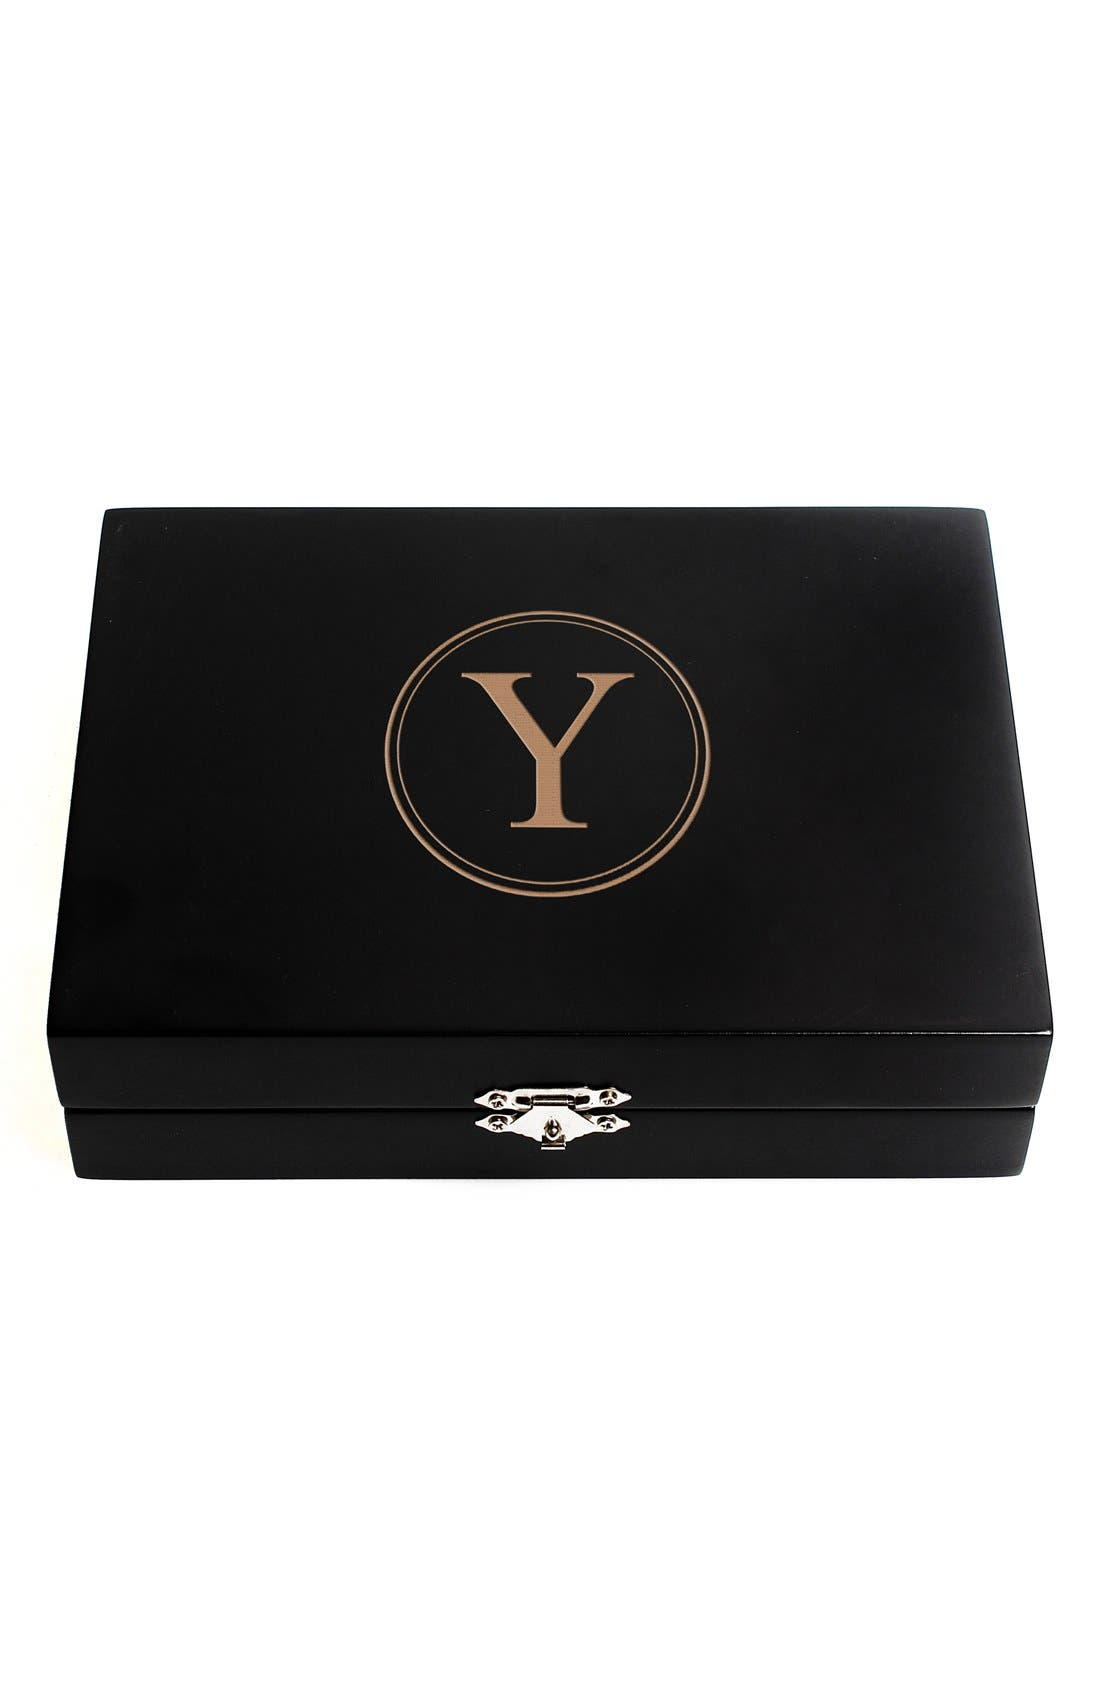 Monogram Wooden Jewelry Box,                             Main thumbnail 27, color,